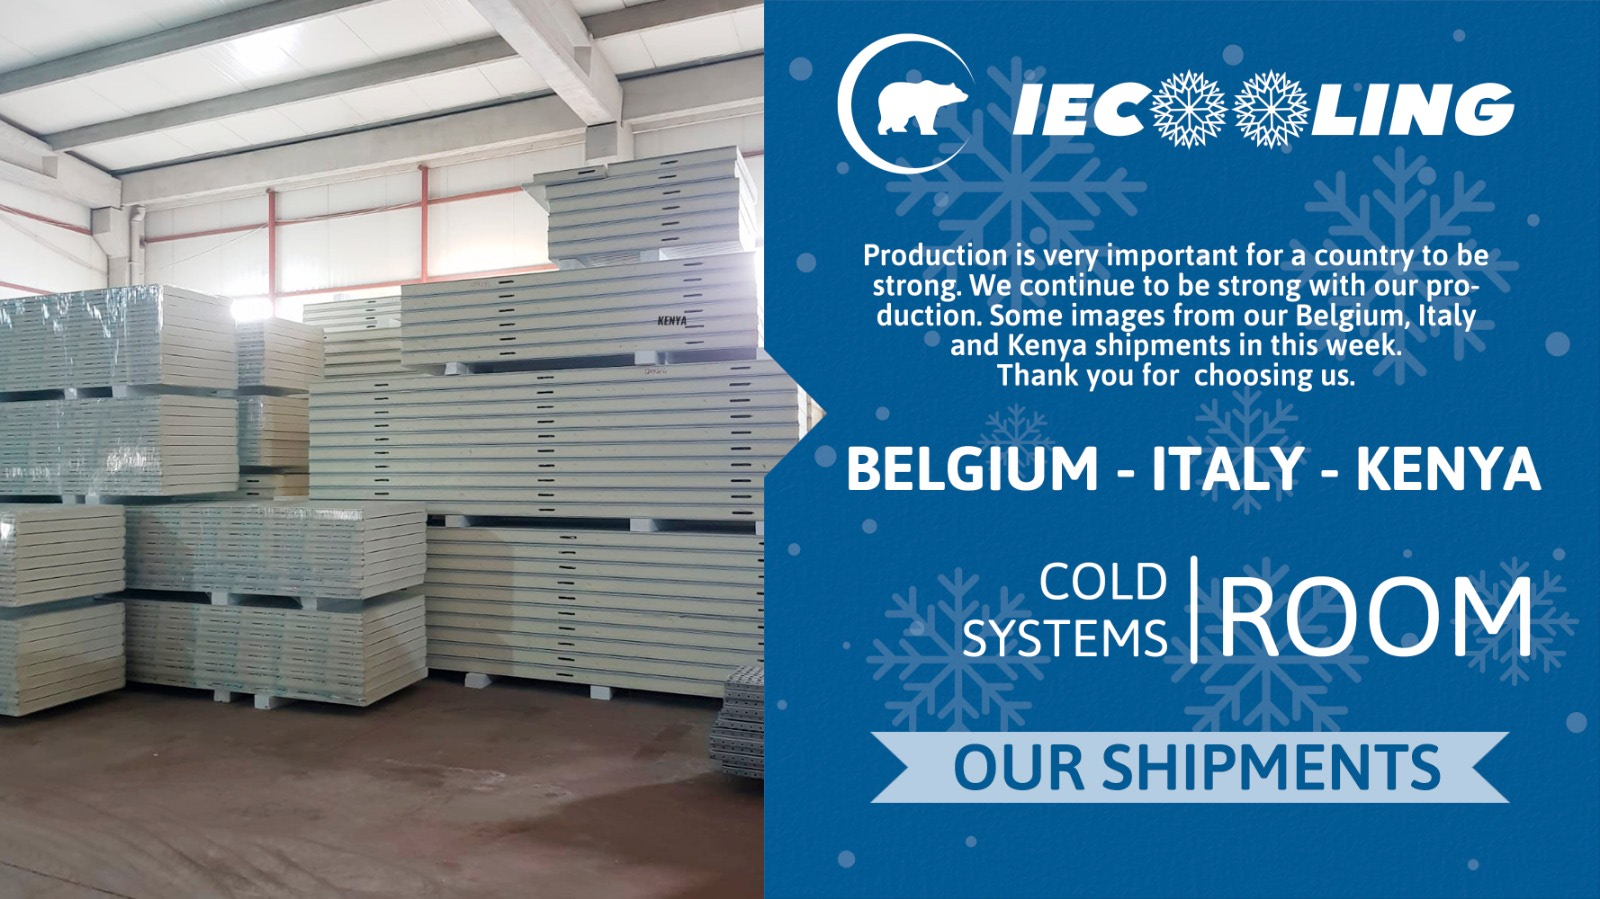 Belgium, Italy and Kenya shipments